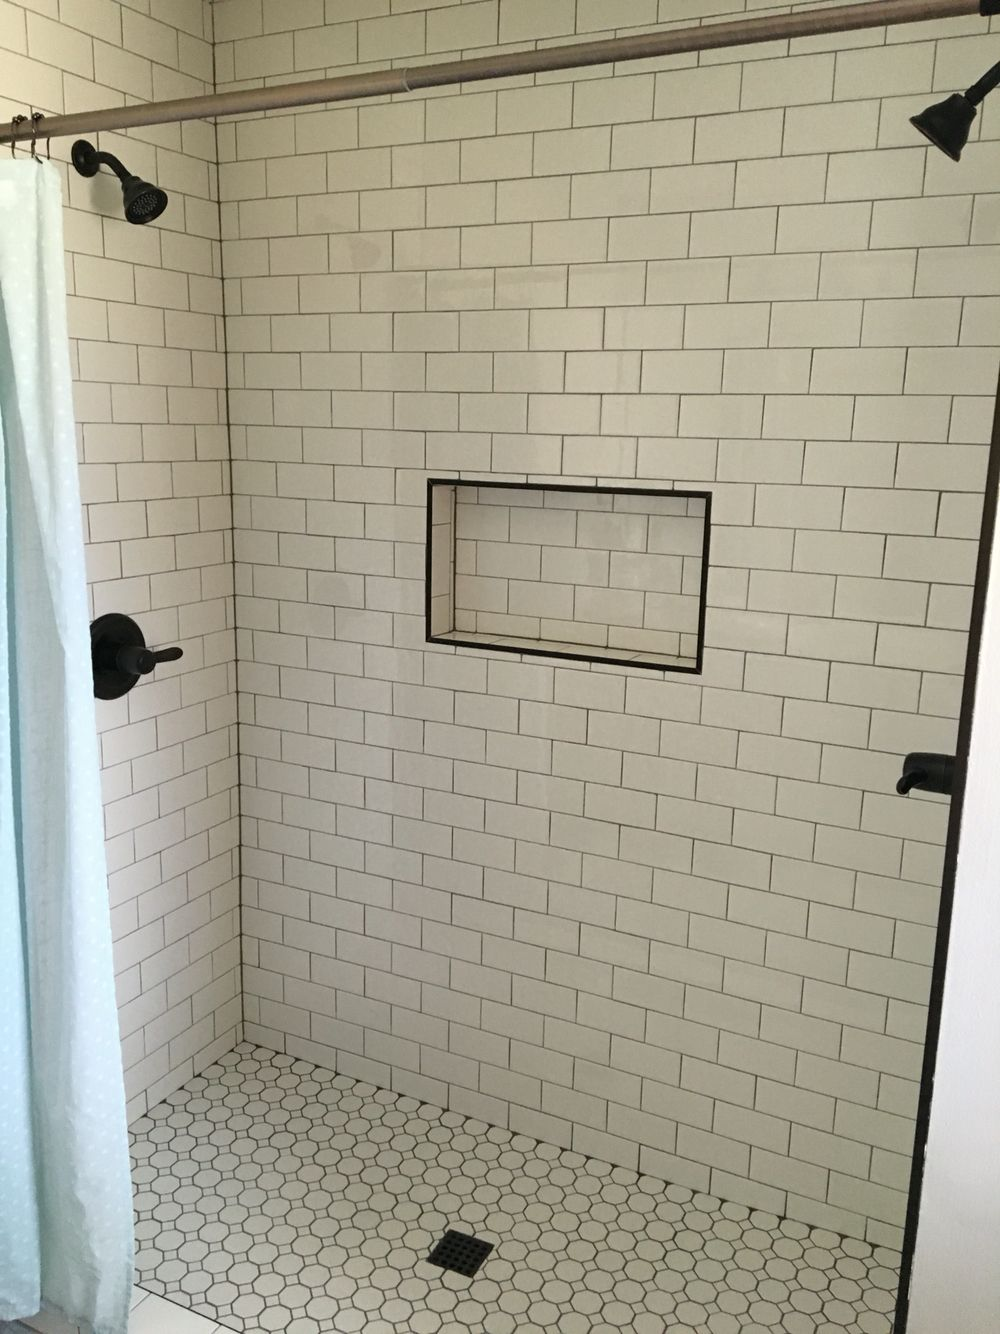 Dual Shower Heads And Subway Tile